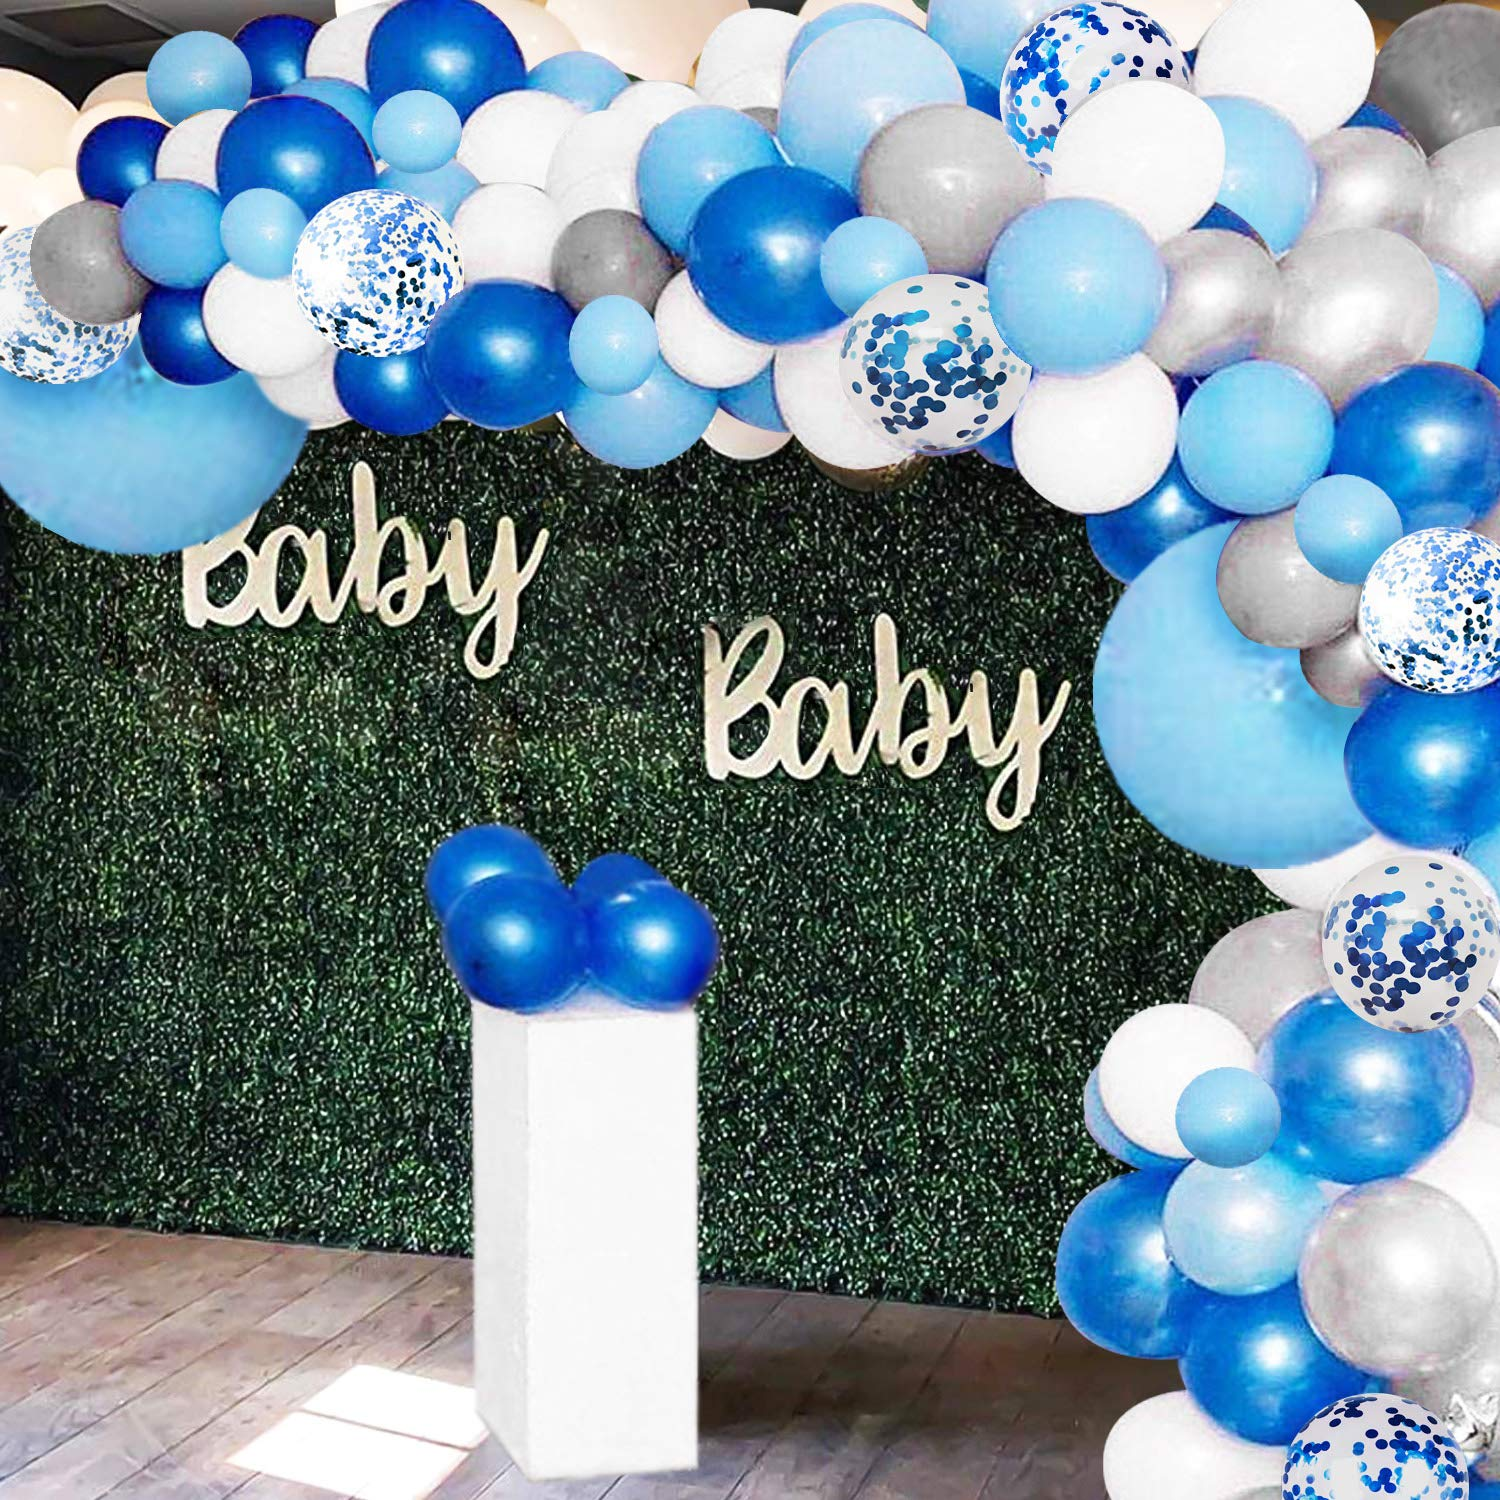 135 Pieces Blue Balloon Garland Arch Kit - White Blue Silver and Blue Confetti Latex Balloons for Baby Shower Wedding Birthday Party Centerpiece Backdrop Background Decoration by GuassLee